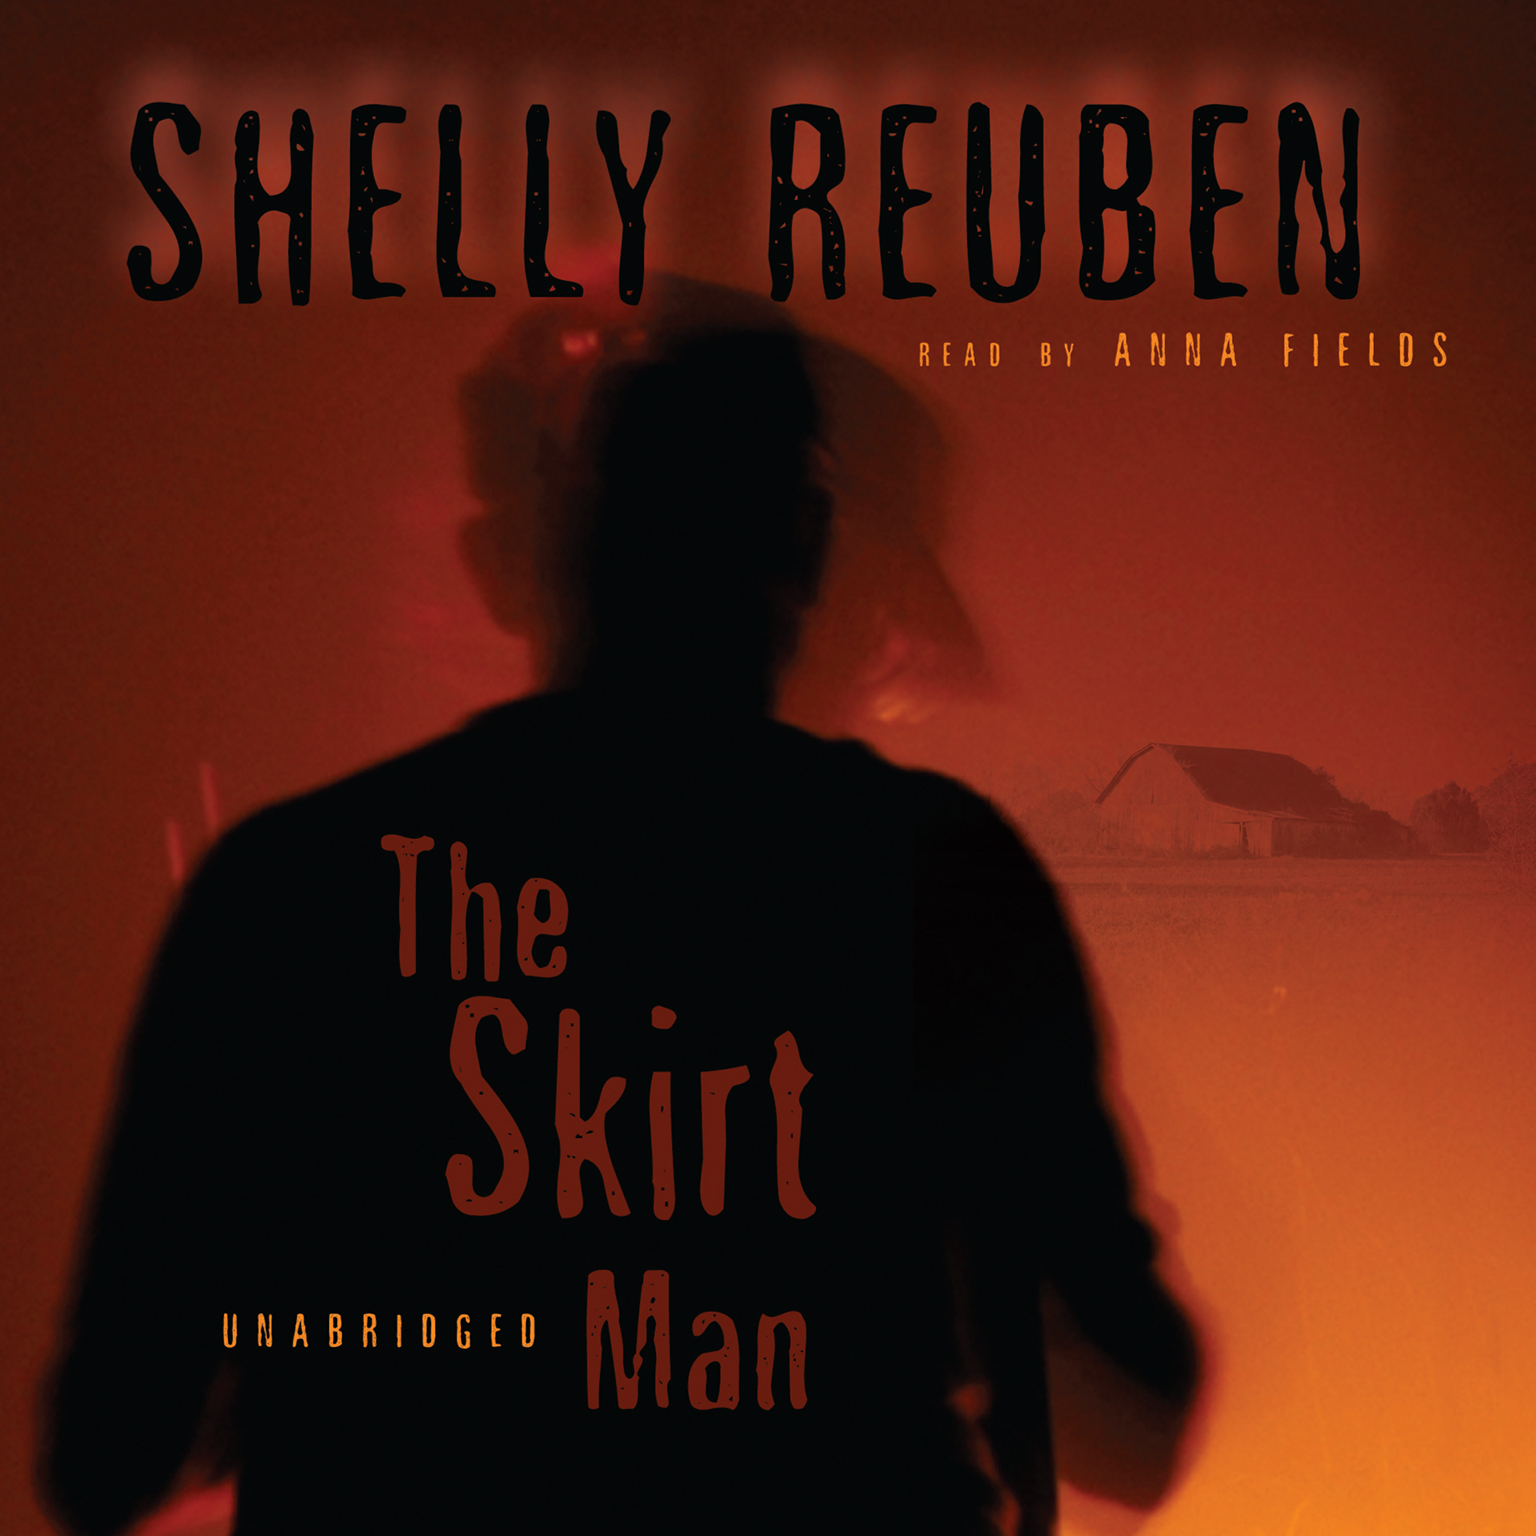 Printable The Skirt Man Audiobook Cover Art